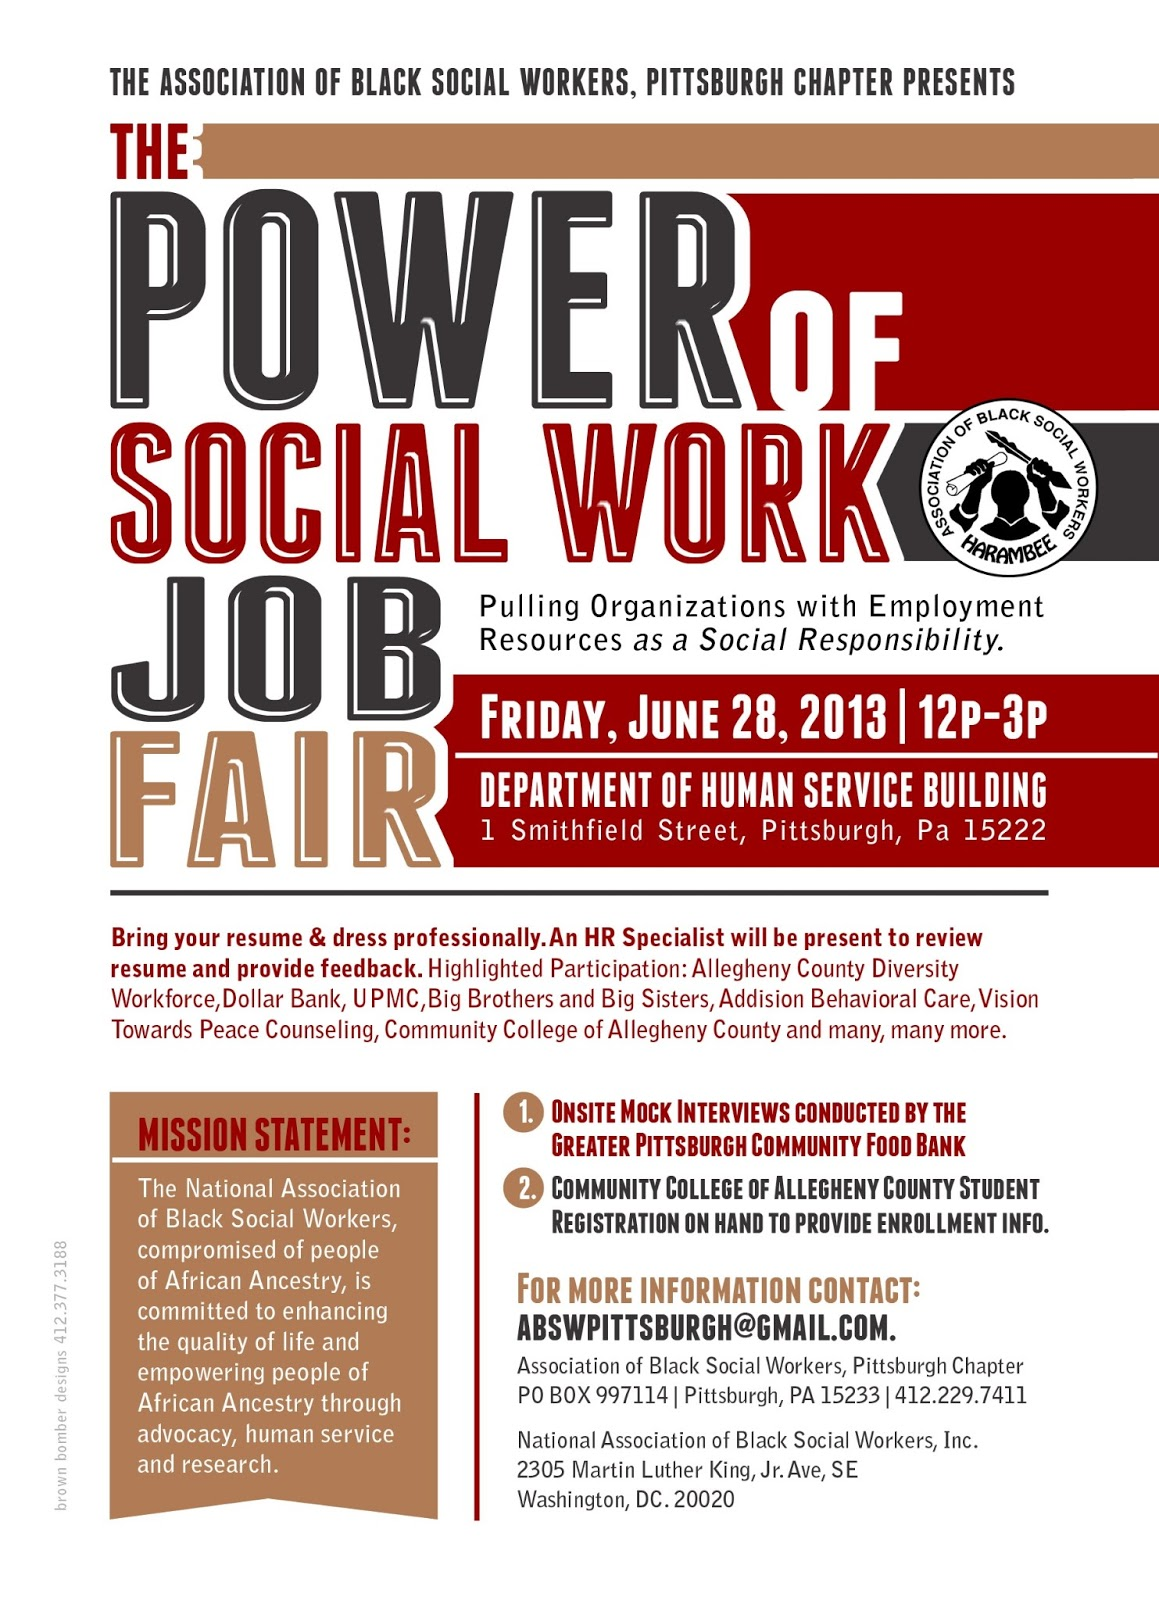 the psnk work bench  social work job fair pittsburgh career link